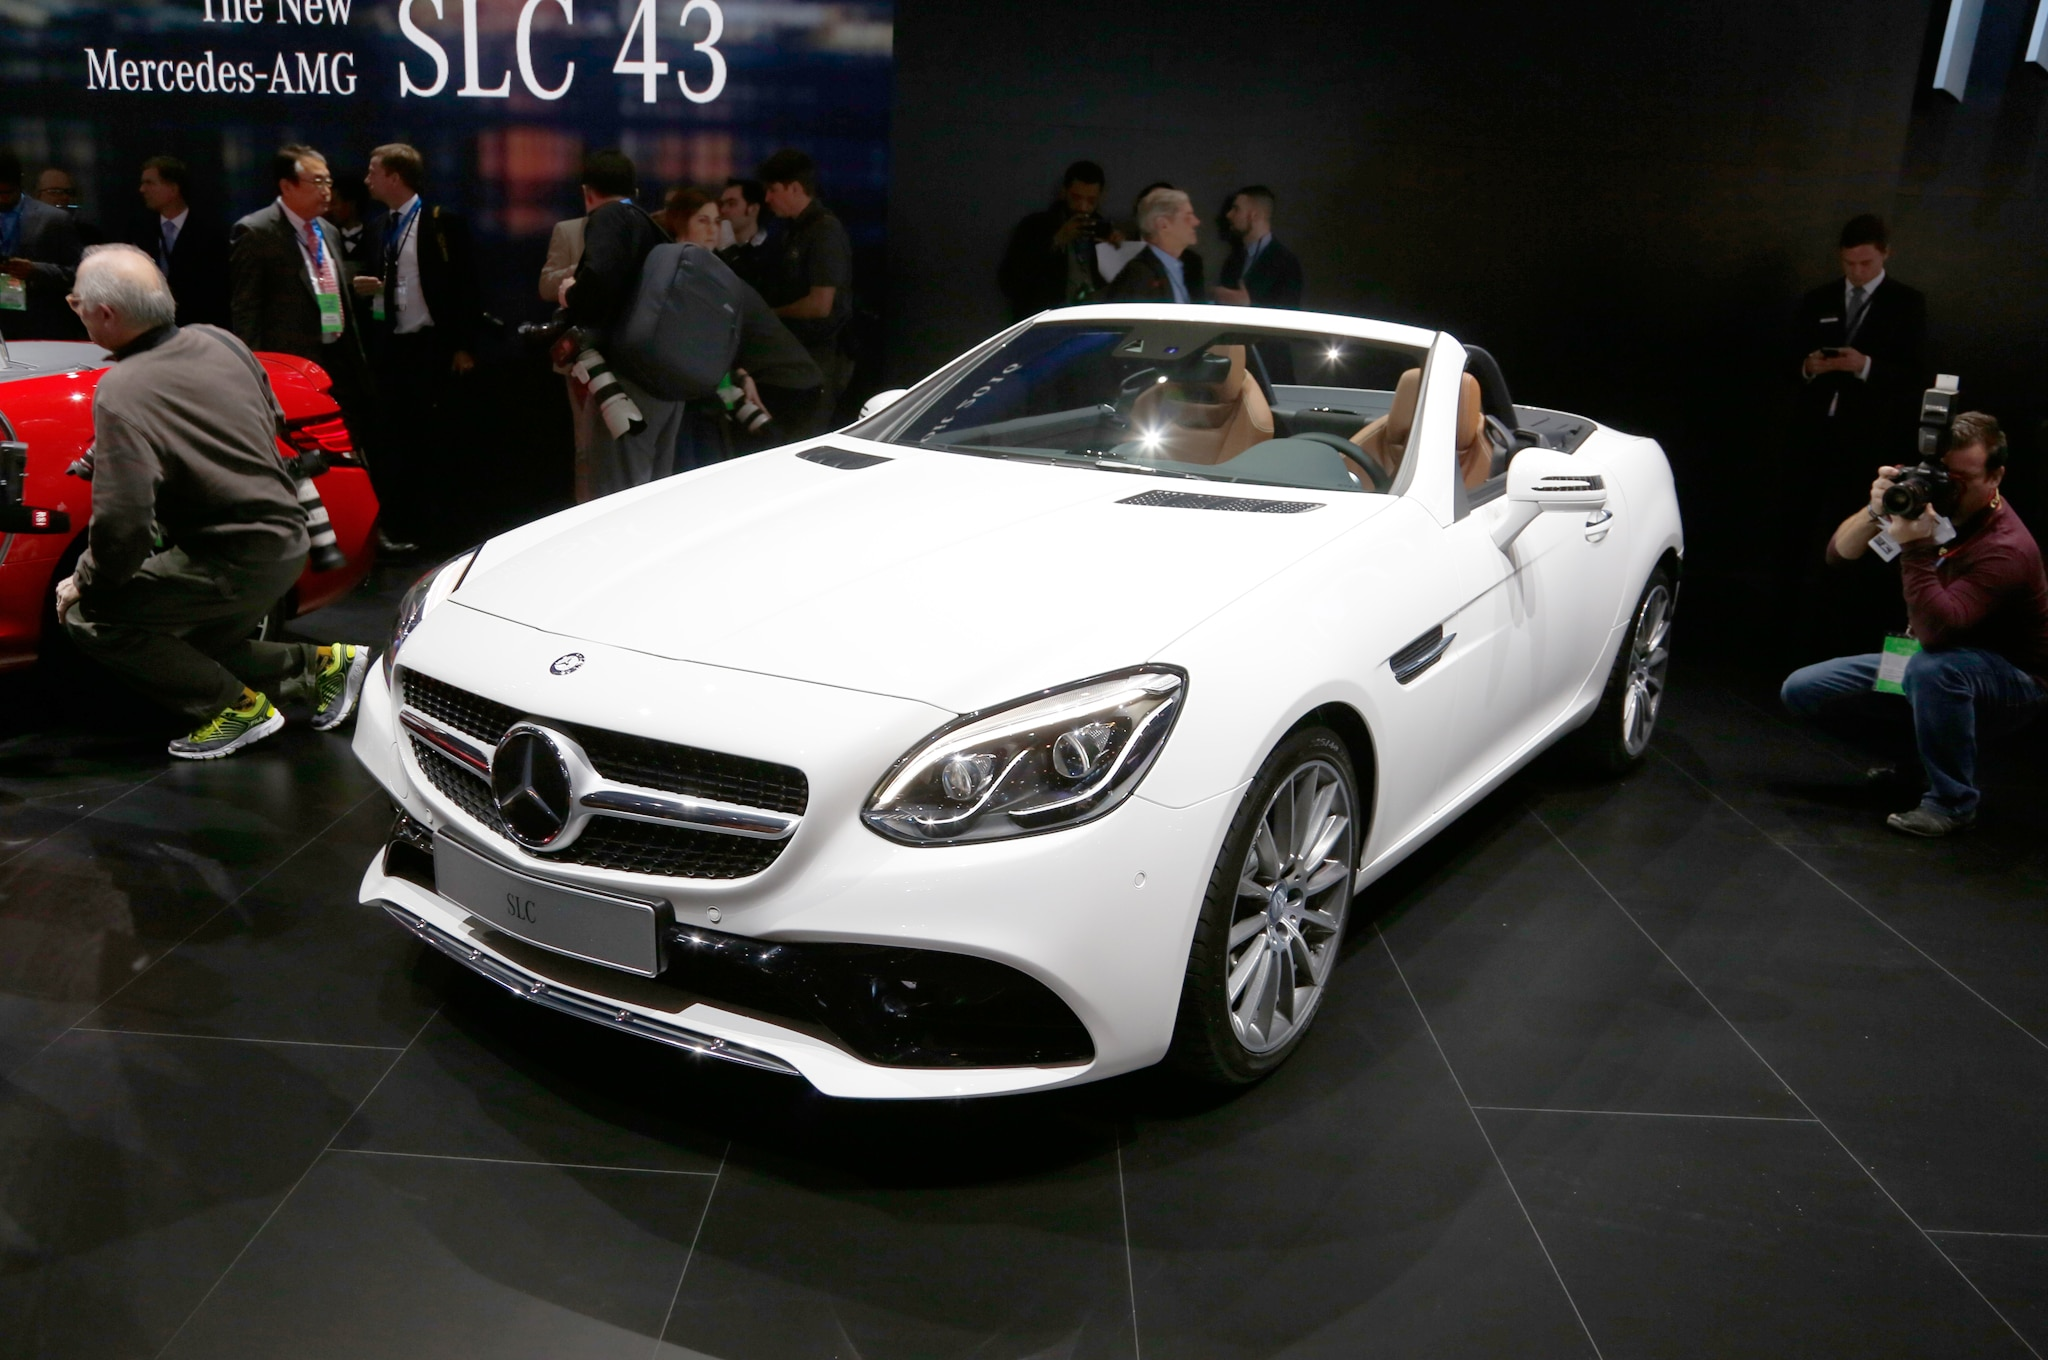 2017 mercedes benz slc heads to detroit with new styling and features. Black Bedroom Furniture Sets. Home Design Ideas